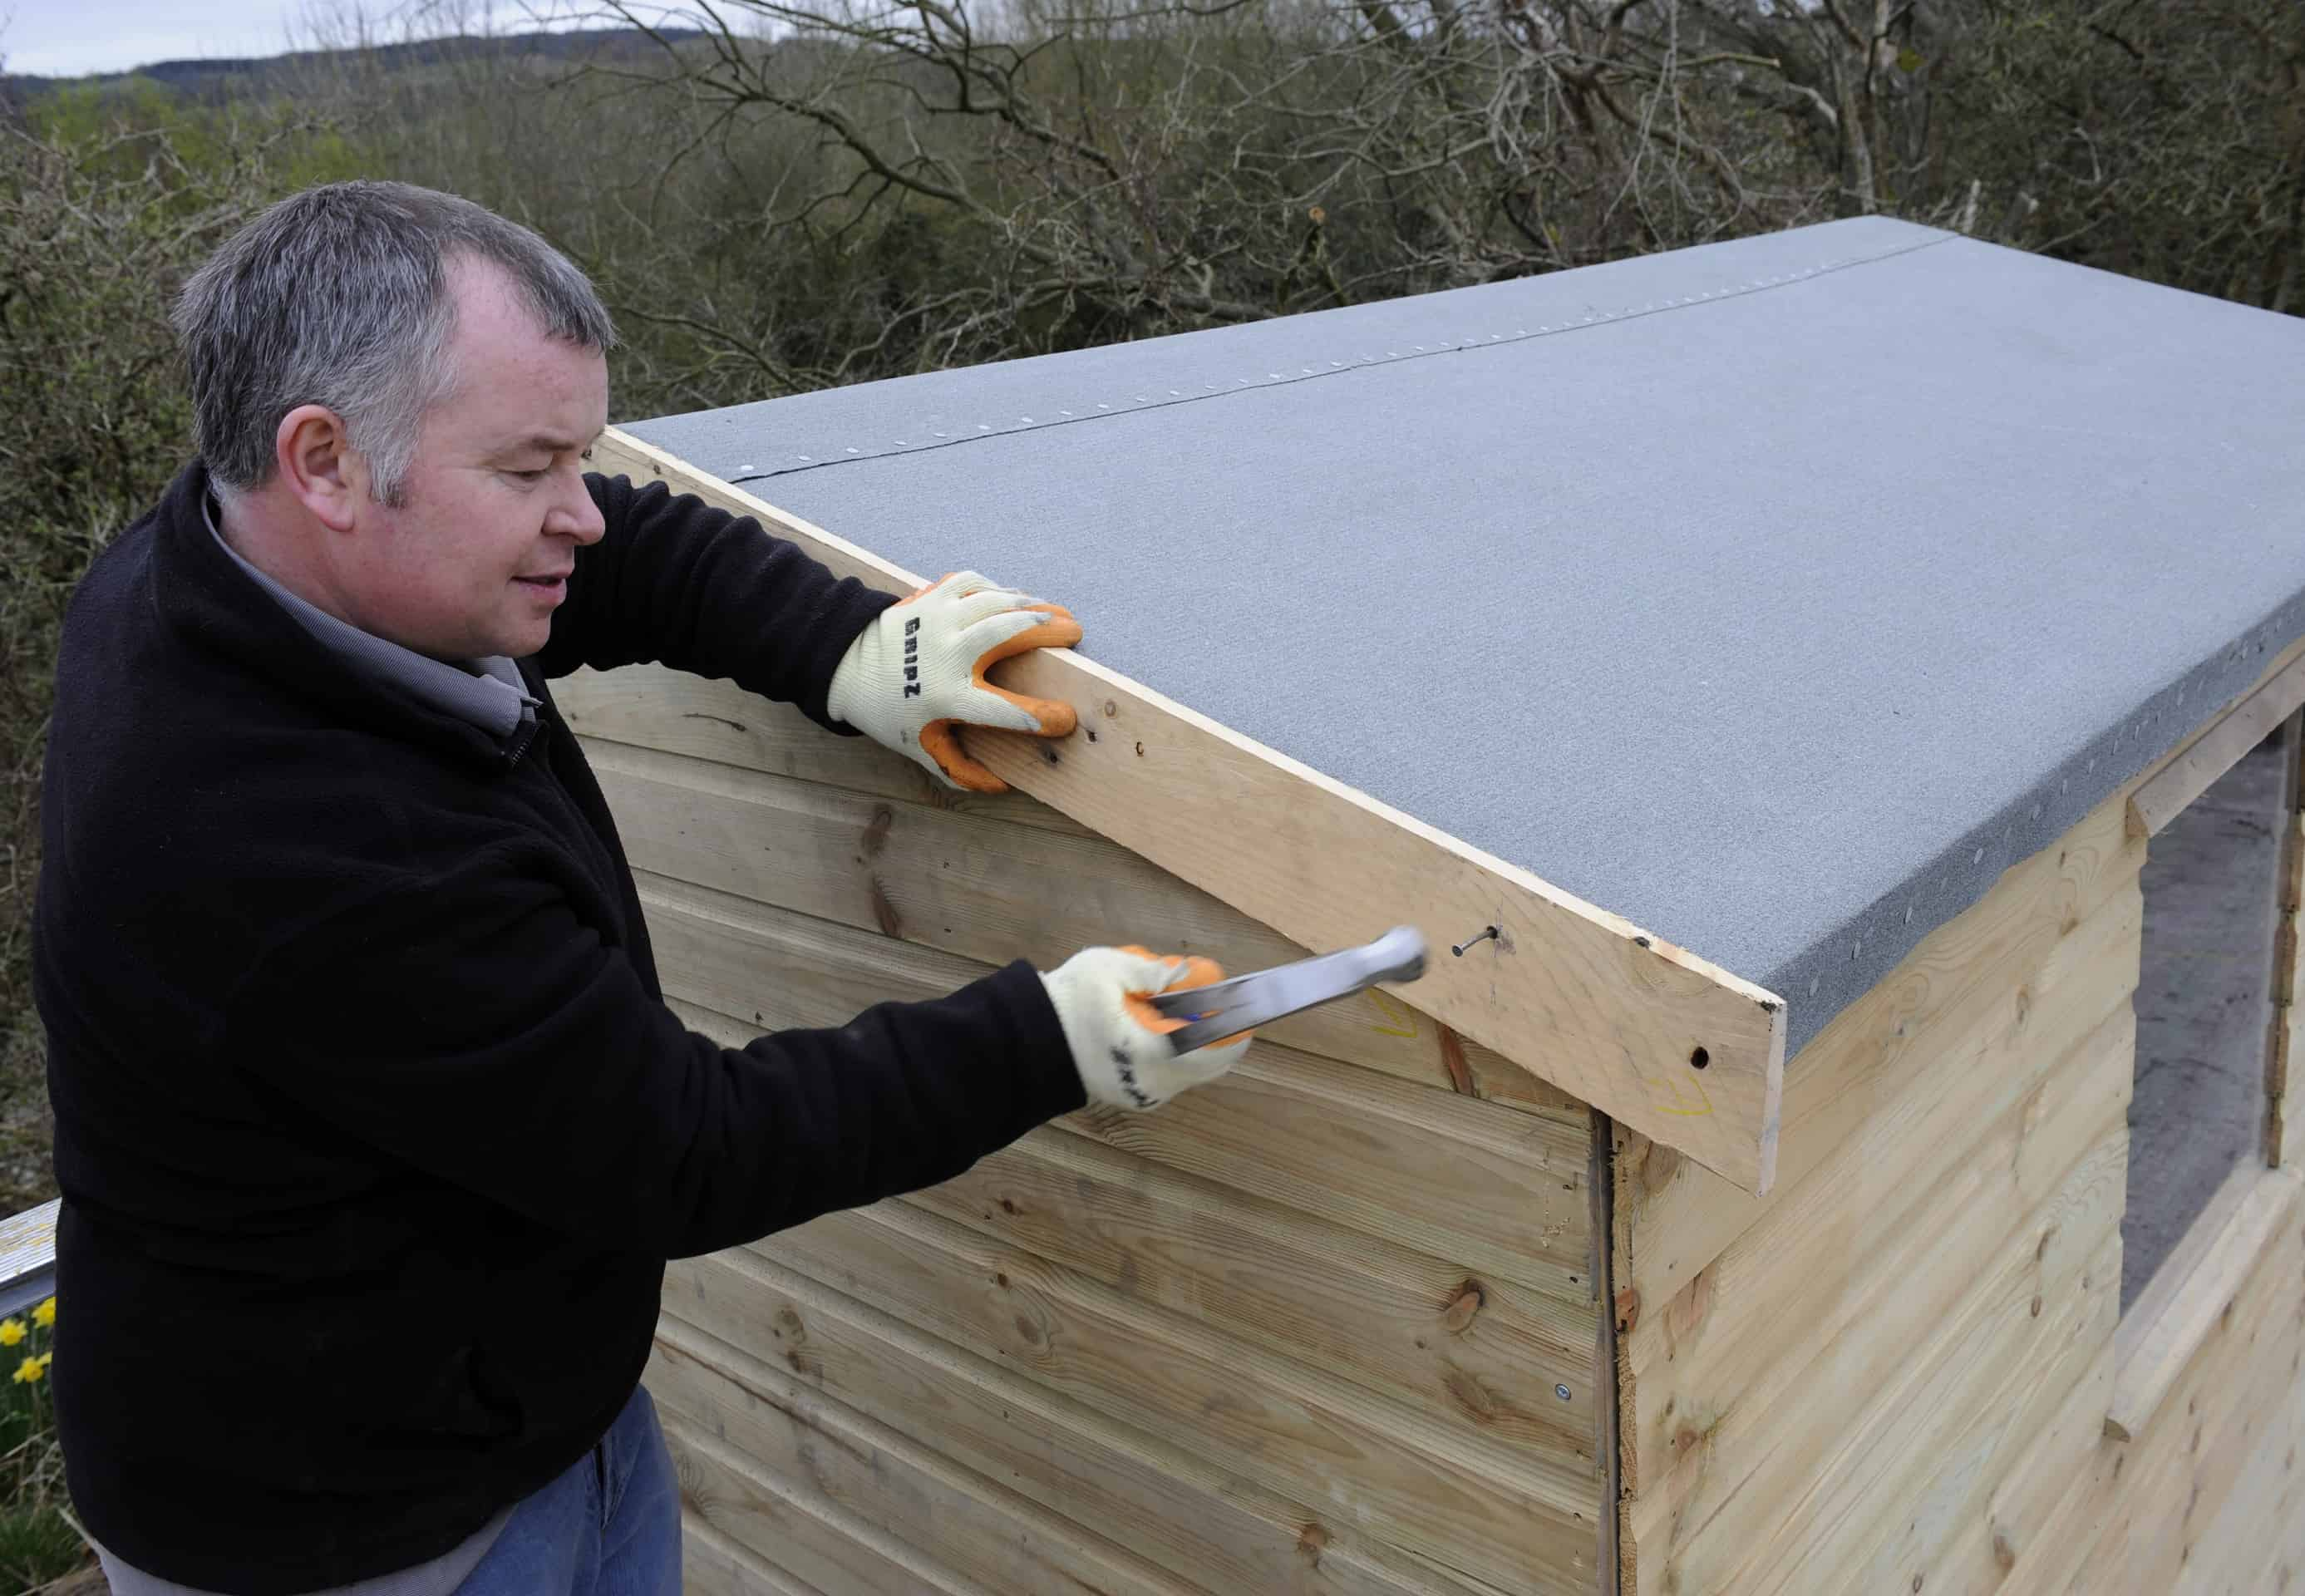 How To Reroof A Shed Shed Roofing Felt Gudie From Iko